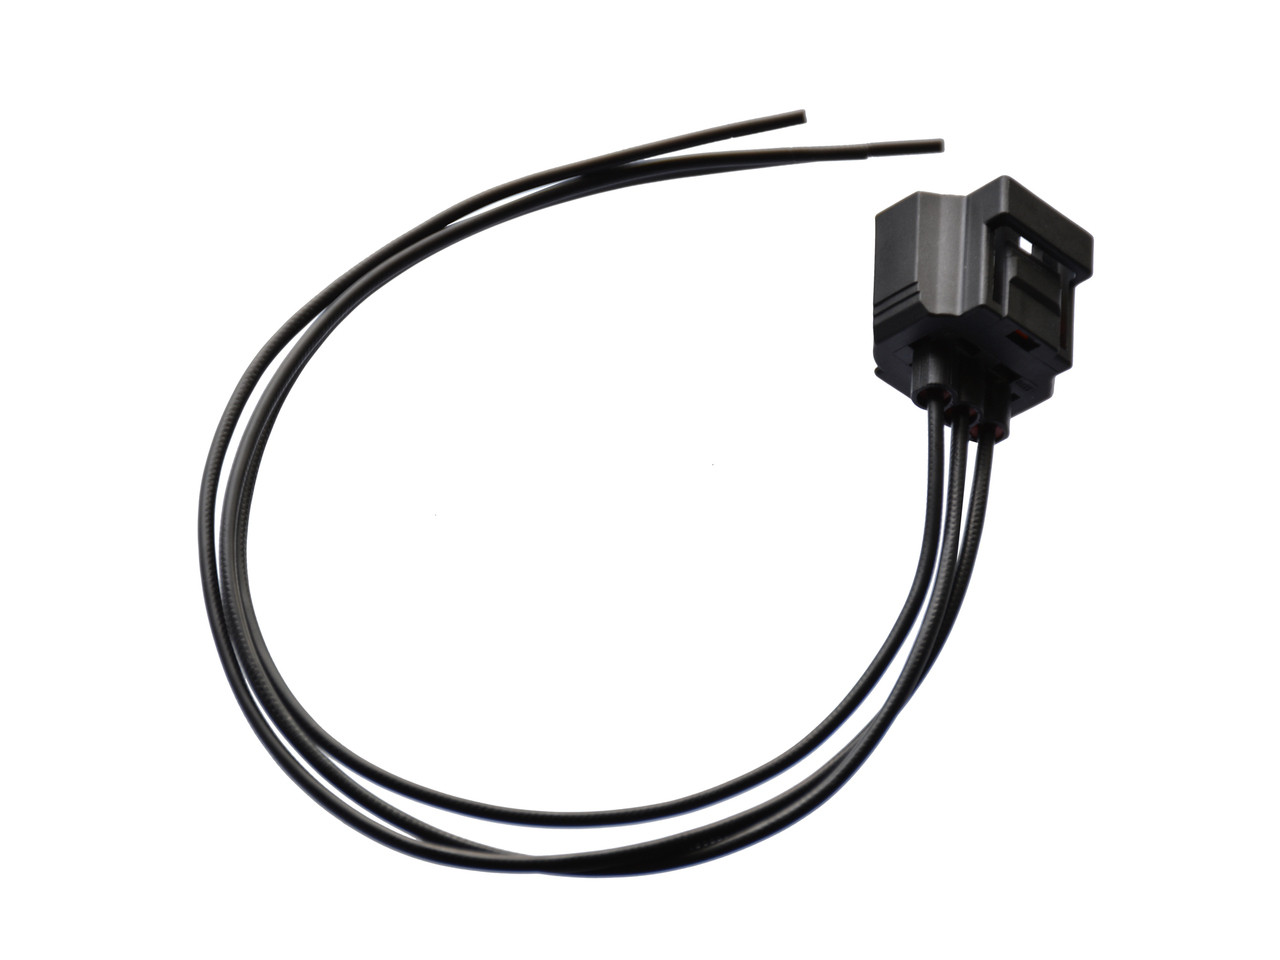 medium resolution of ford alternator connector 3 wire plug mustang crown victoria wpt118 ford 3 wire alternator connector plug